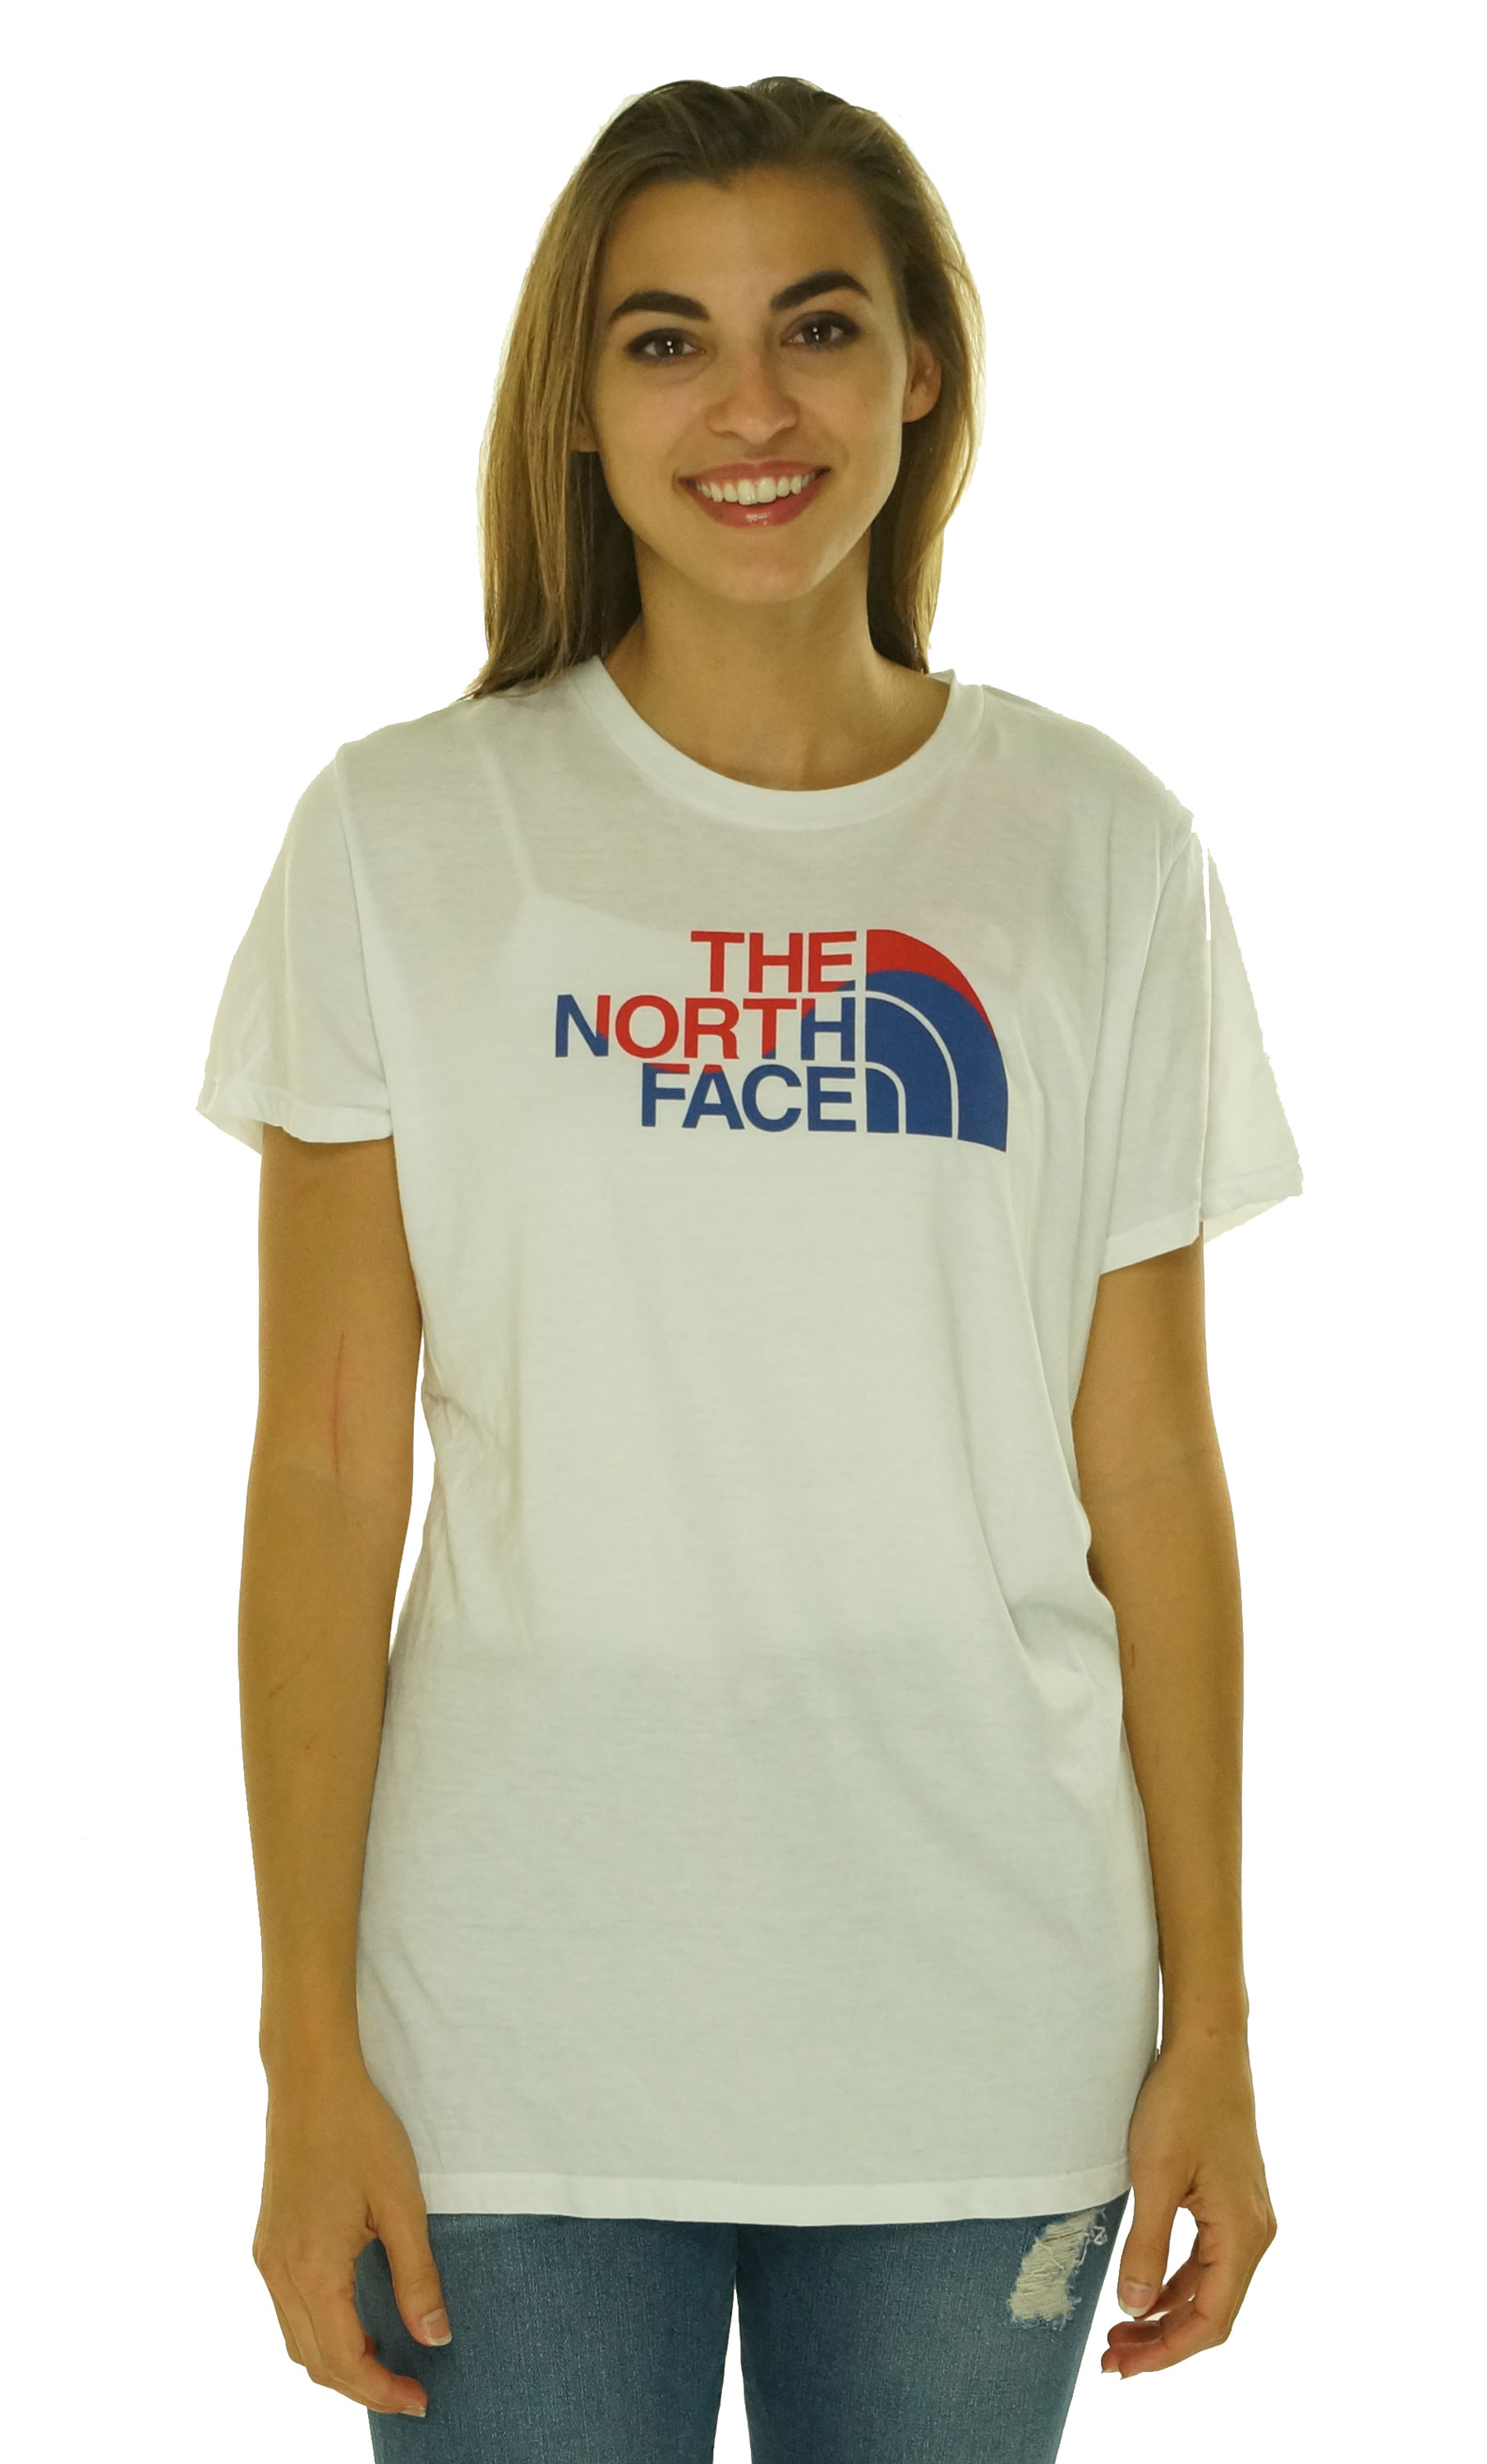 The-North-Face-Women-039-s-Short-Sleeve-Crew-Neck-Graphic-Tee-White-Size-XL